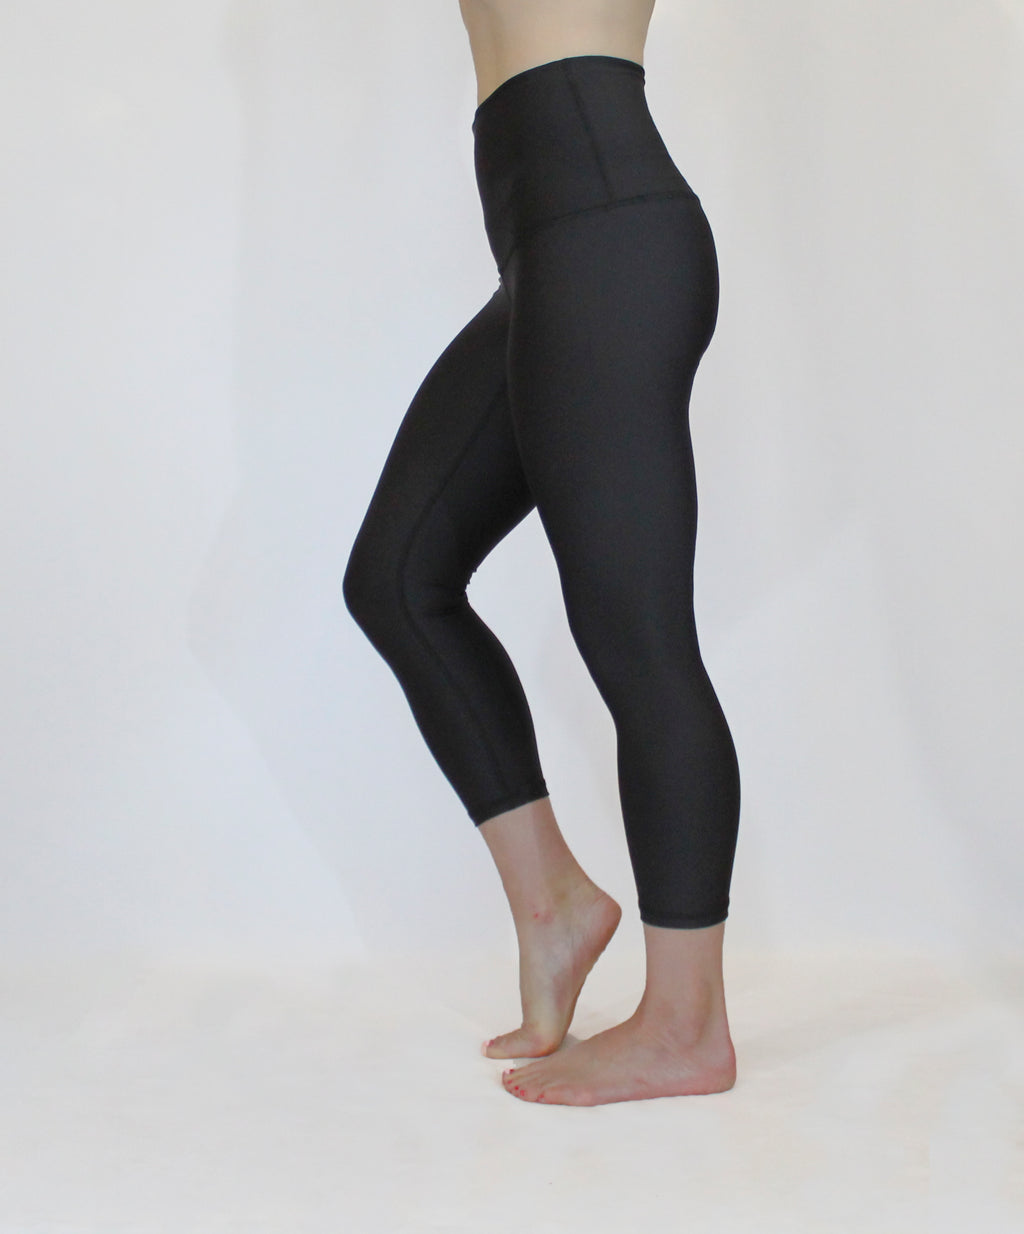 SUMMER - The Give Back with Black 7/8th Leggings - LAST CHANCE!